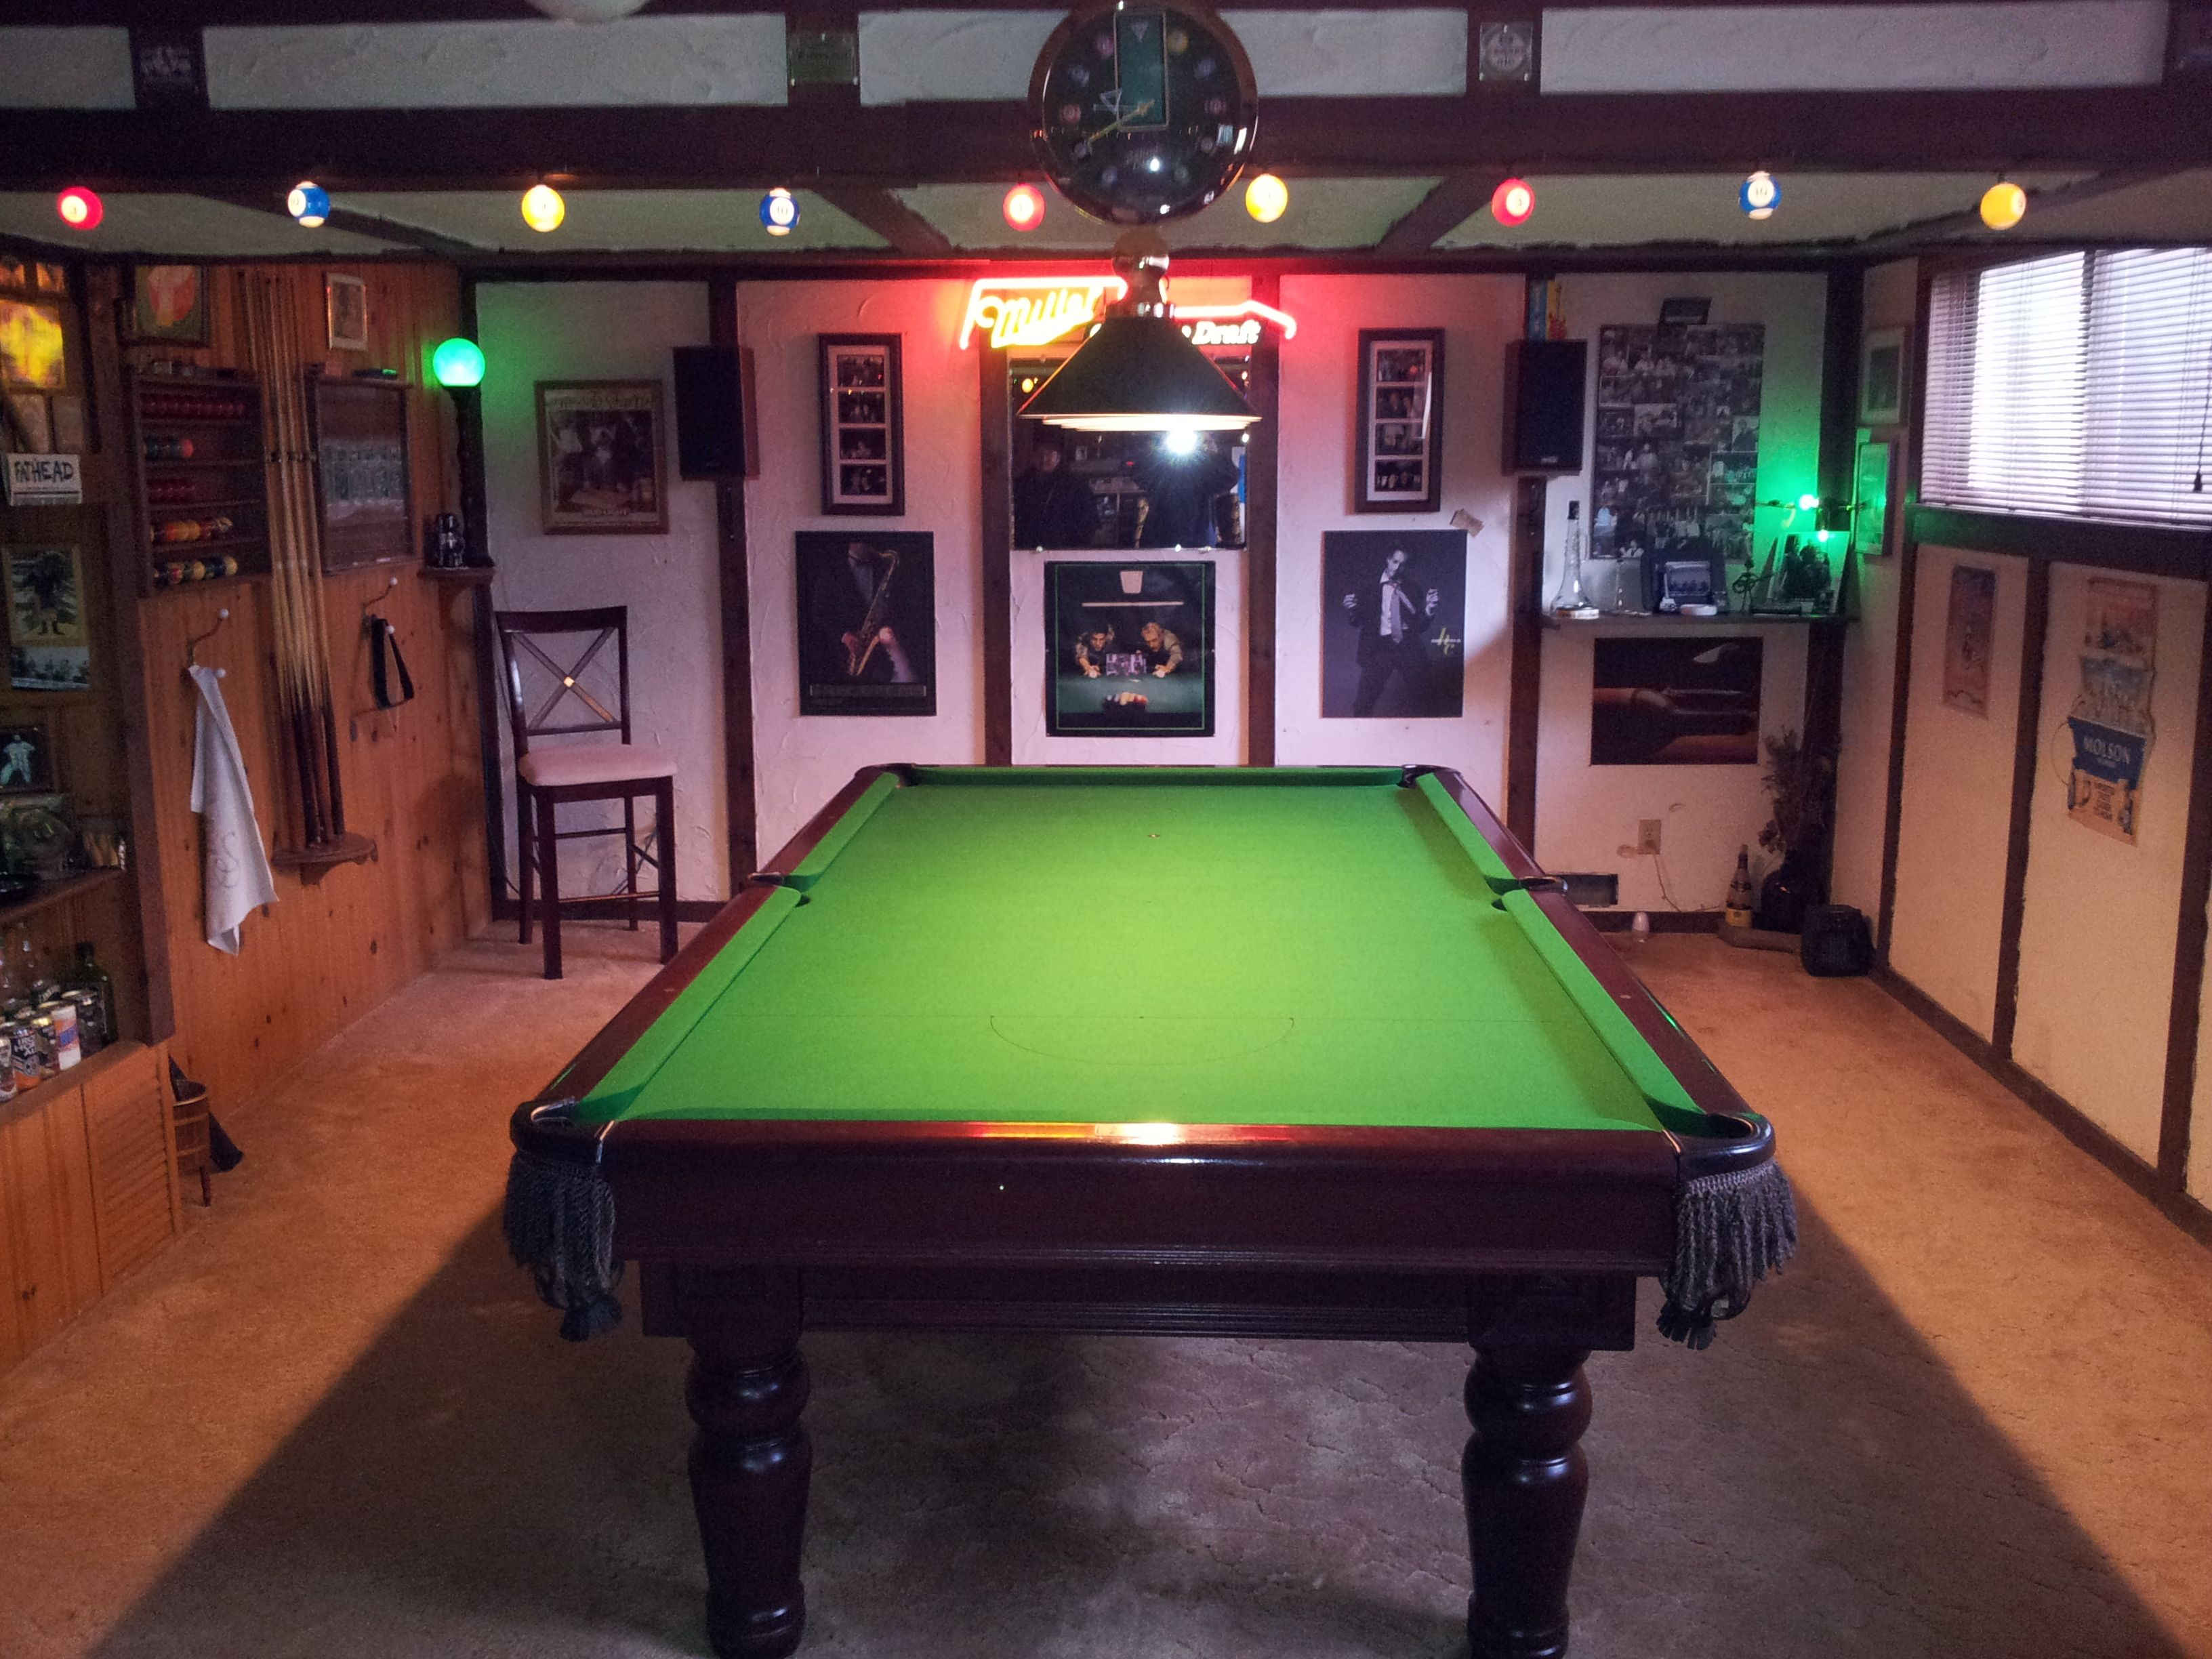 Captivating Best Photos, Images, And Pictures Gallery About Pool Table Room Ideas. #pool  Table Room Ideas Man Caves #pool Table Room Ideas Small #pool Table Room  Ideas ...